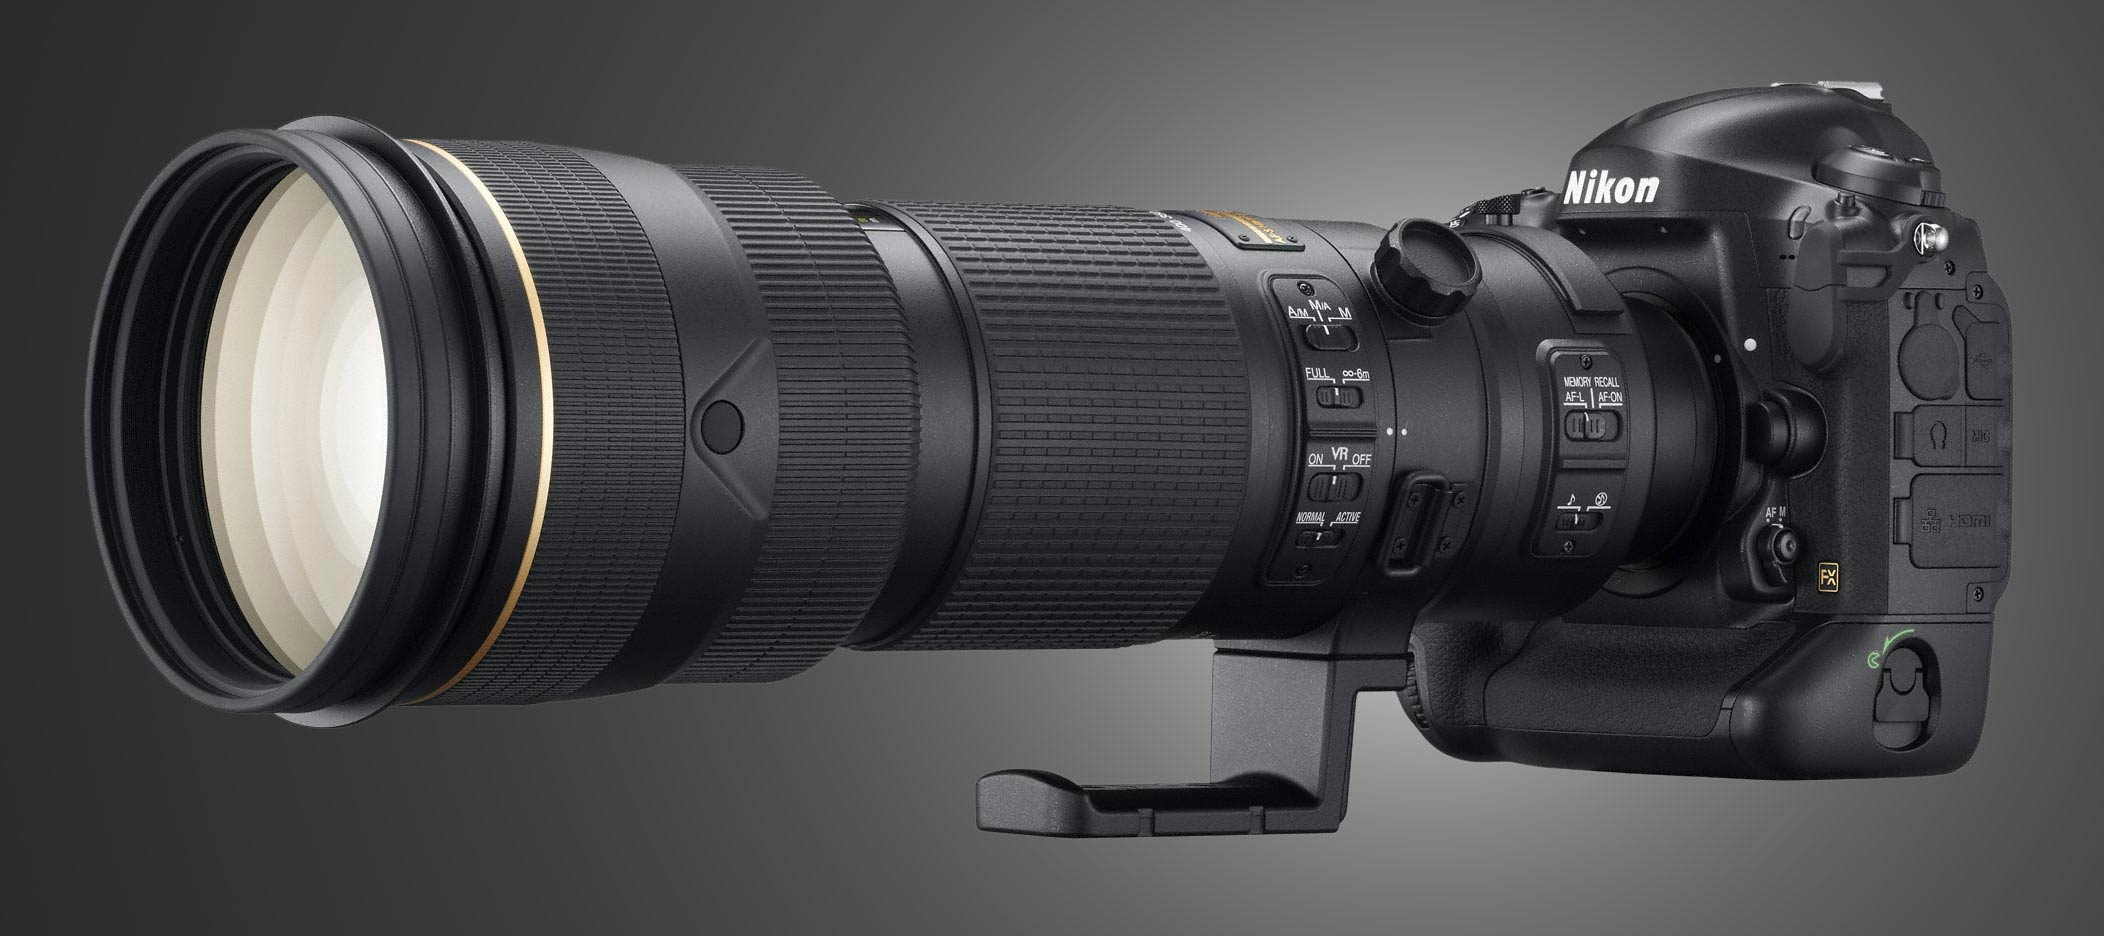 Nikon D4 with Telephoto Lens and Extender